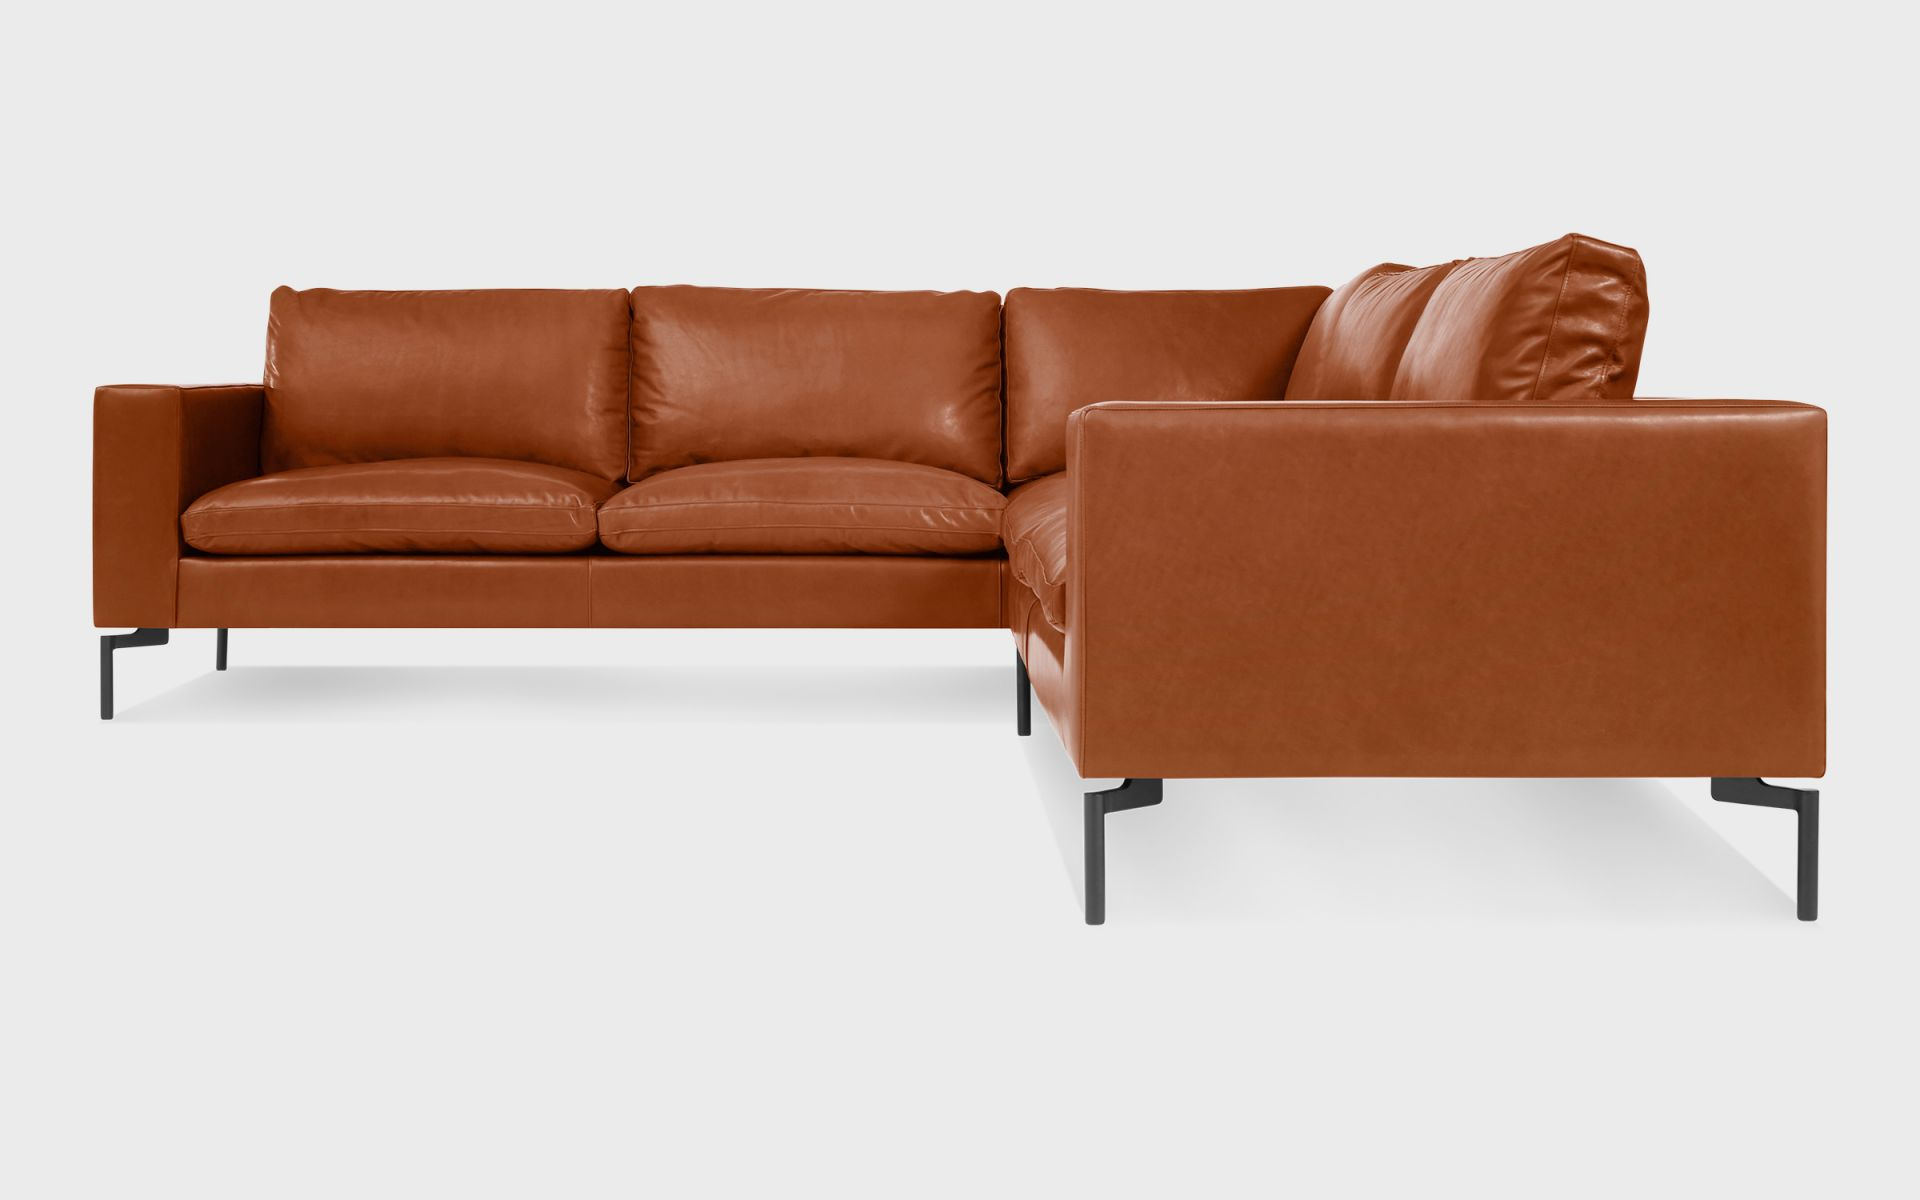 New Standard Small Leather Sectional – Modern Leather Sofa | Blu Dot throughout Leather Sectional Sofa